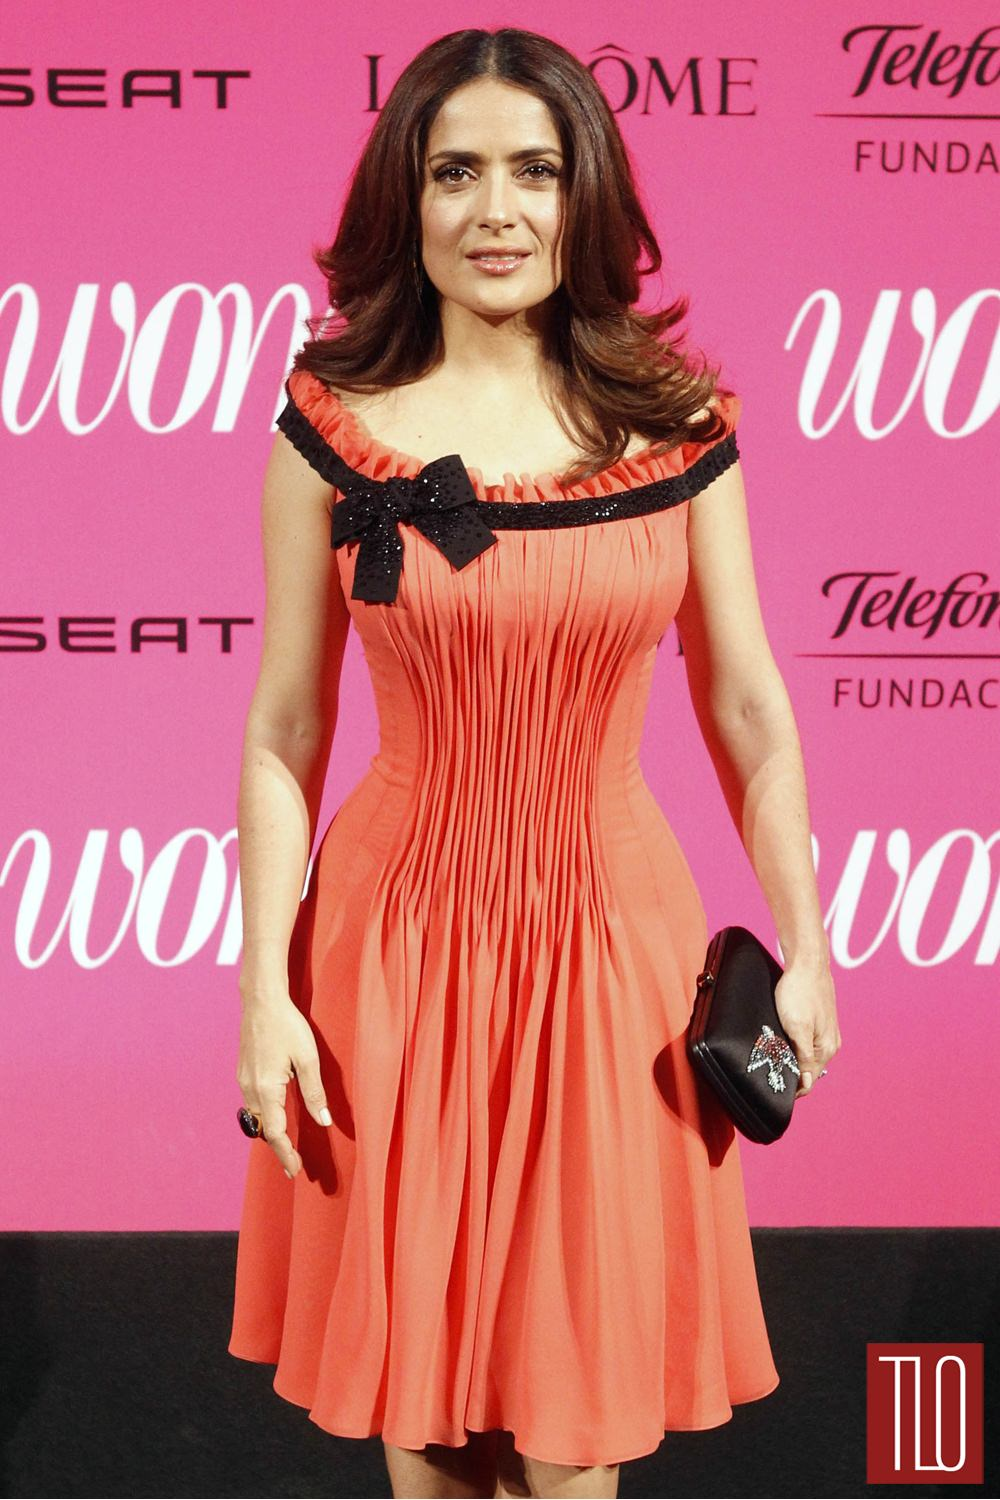 Salma Hayek at the 2015 Woman Magazine Awards